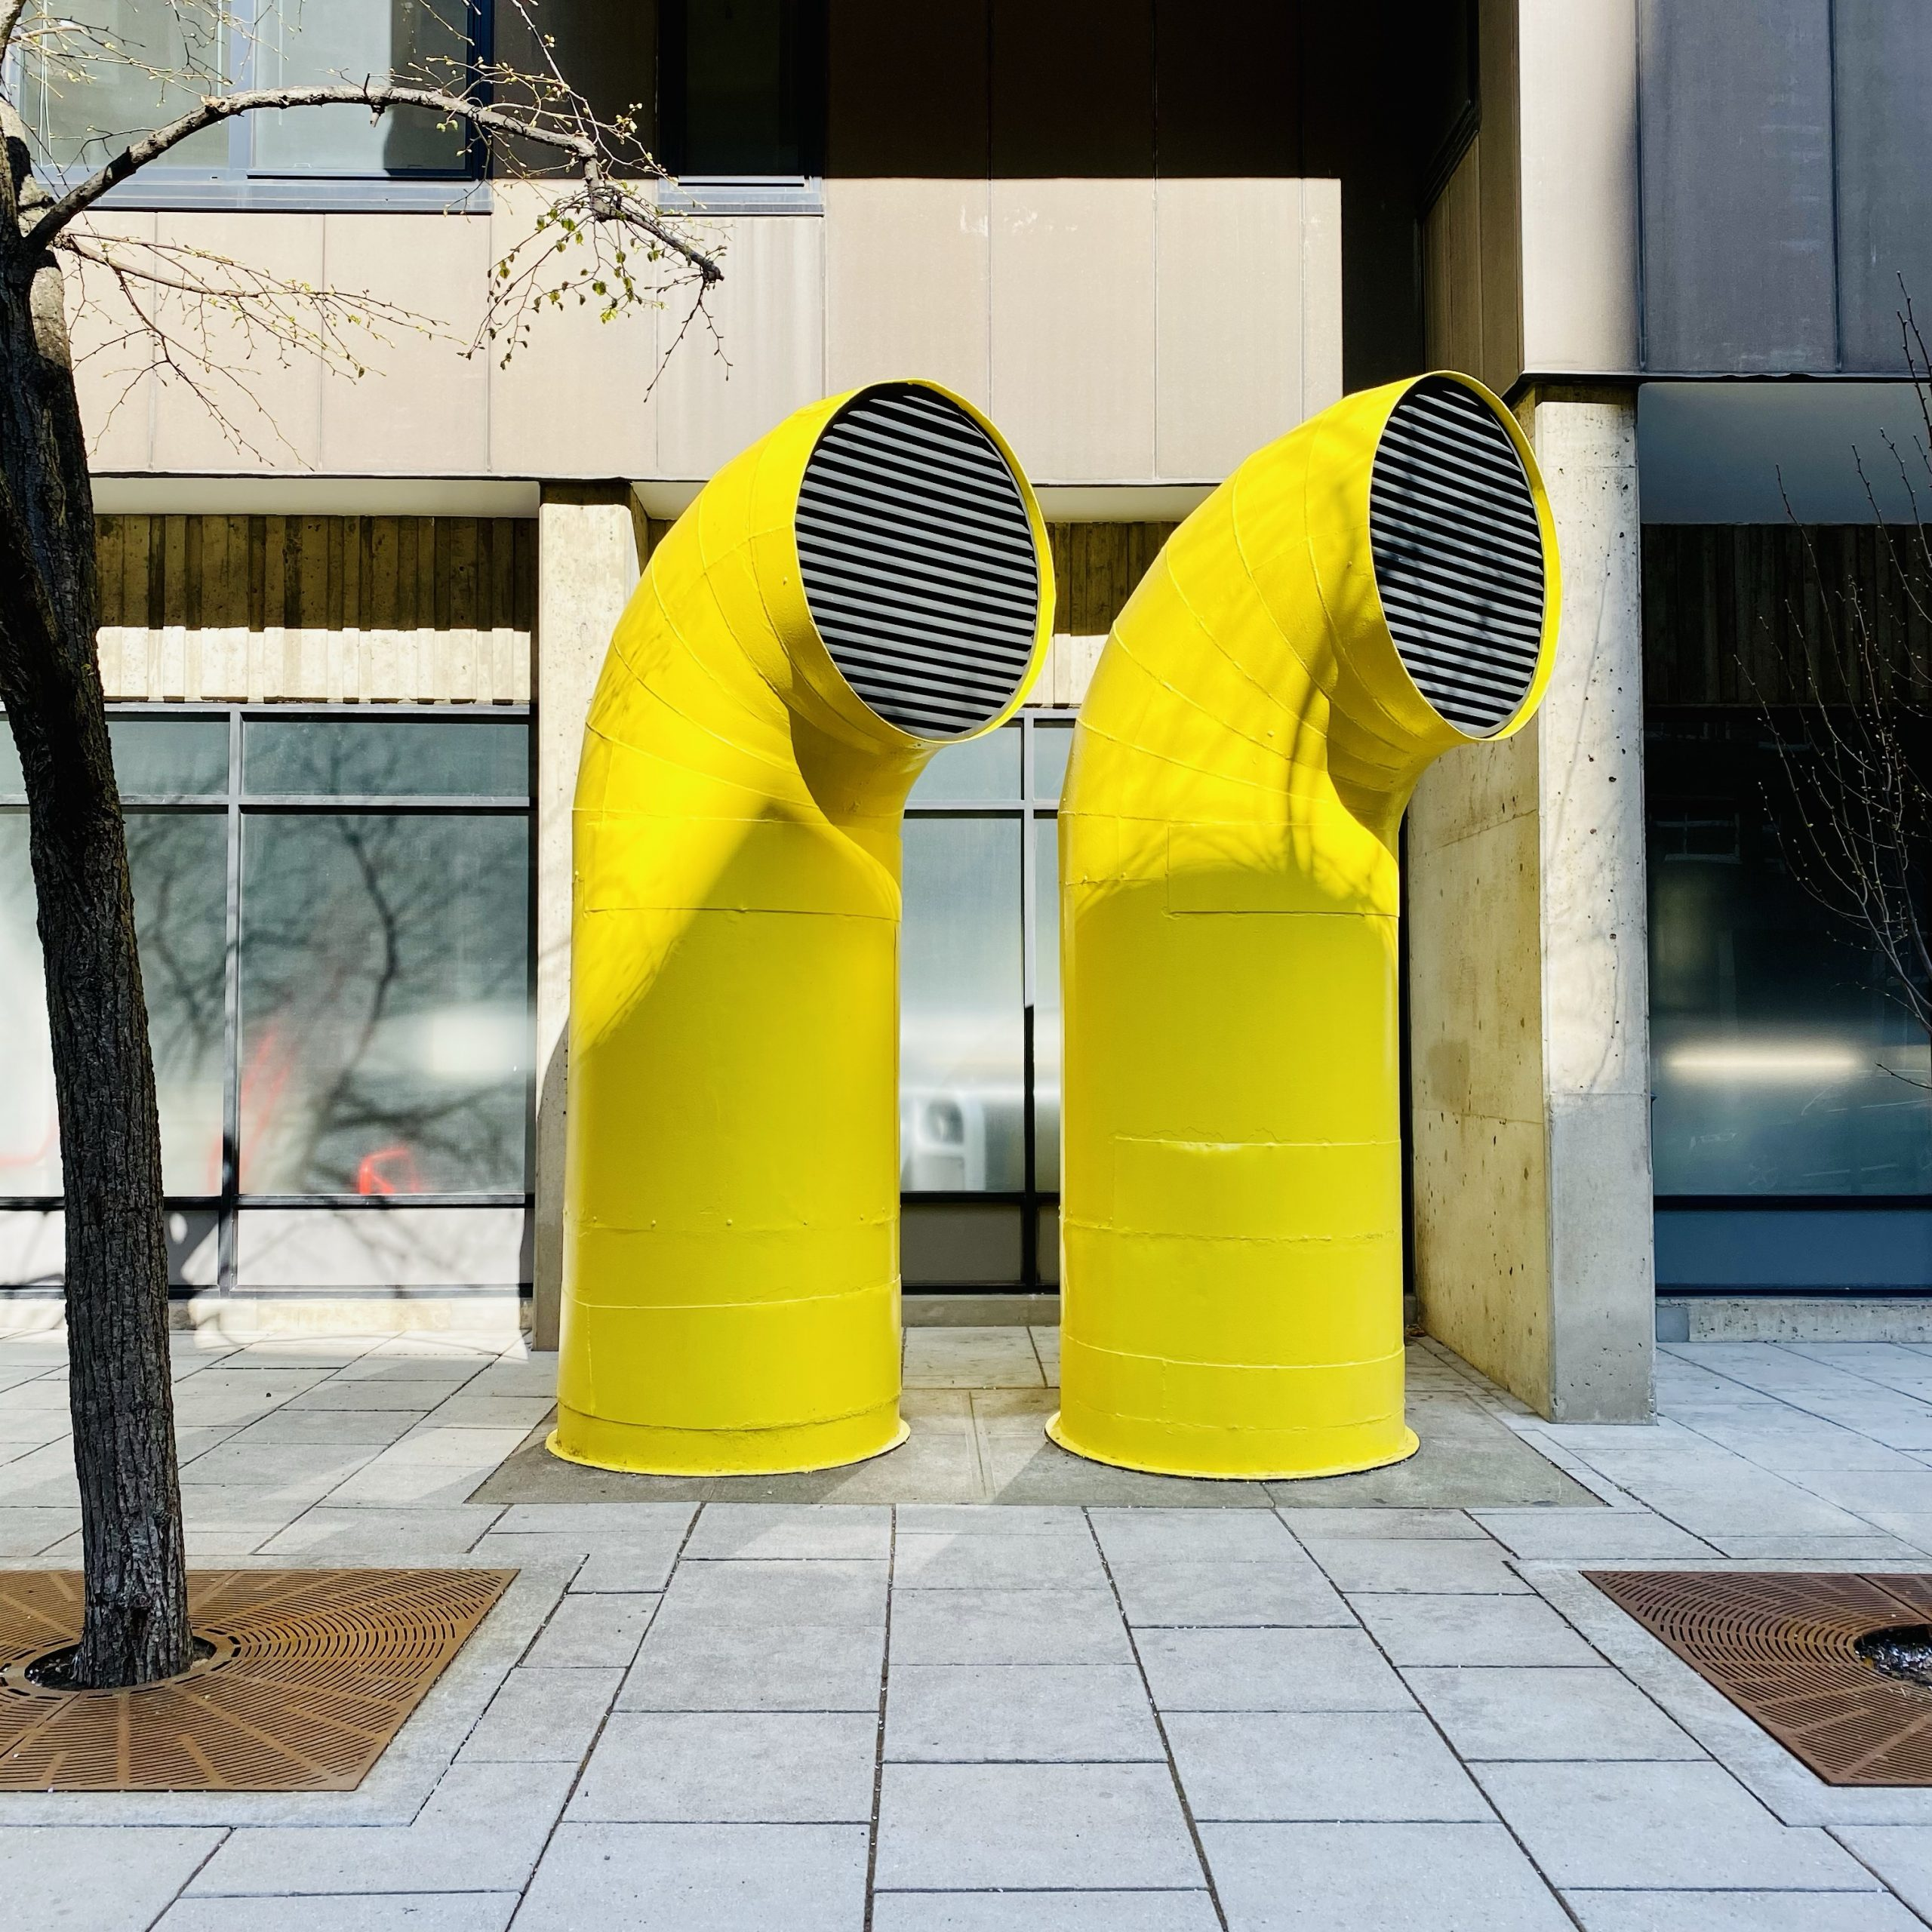 Roosevelt Island Air Tube front - yellow - in color